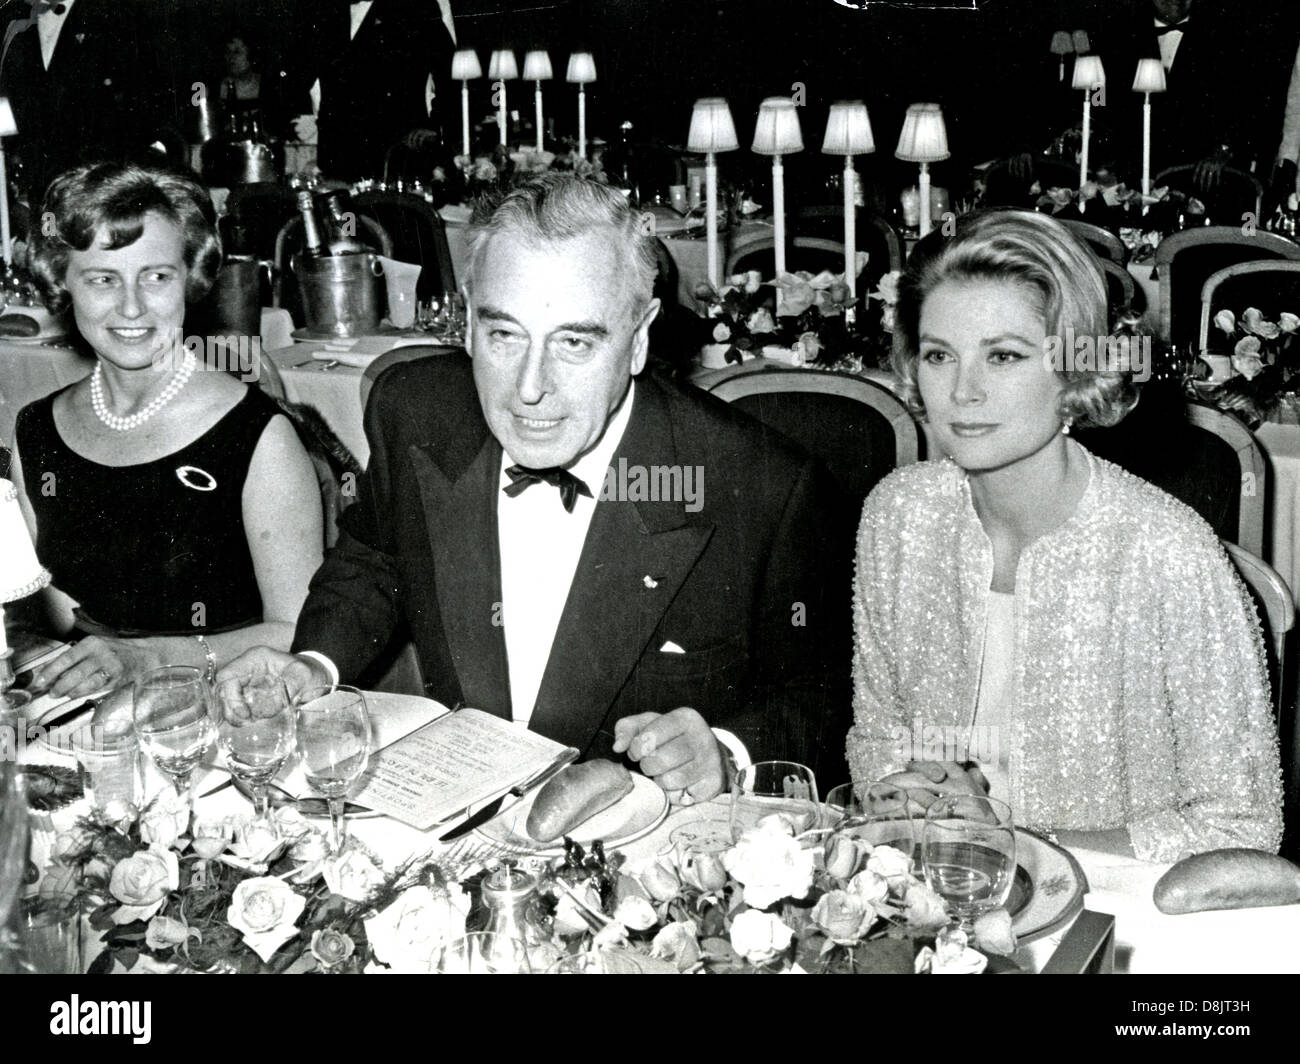 PRINCESS GRACE OF MONACO with Louis Mountbatten about 1965 - Stock Image